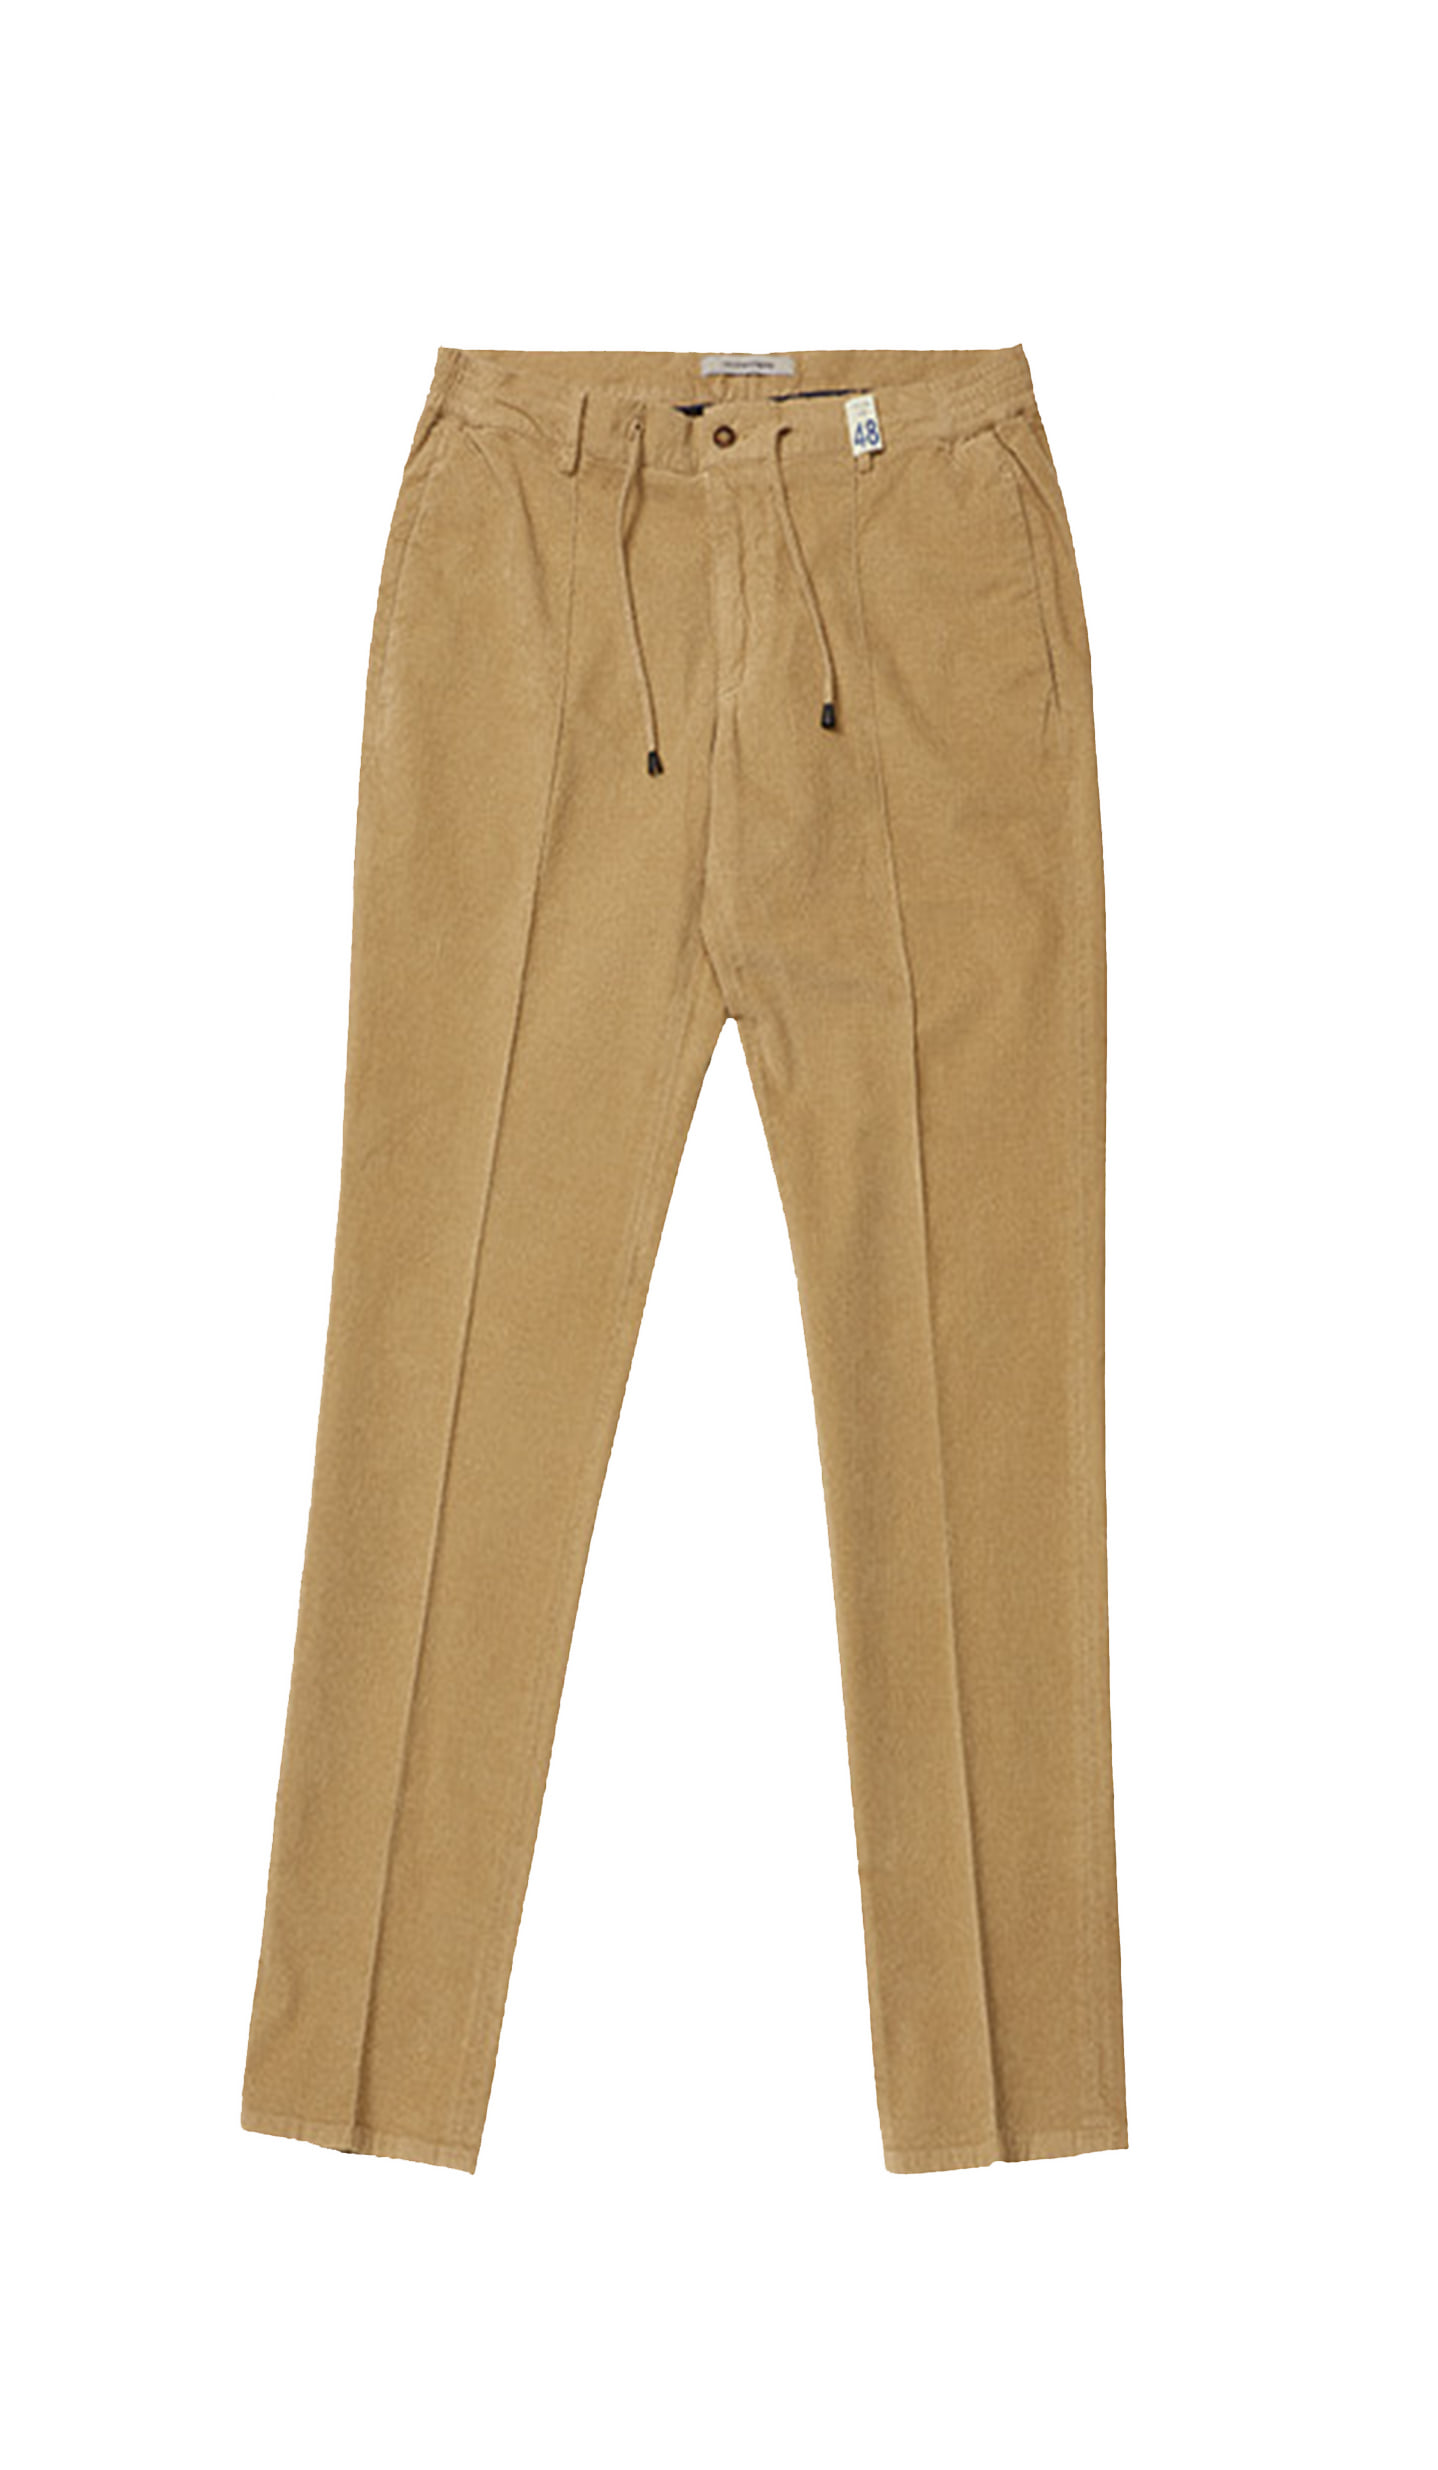 TAILORABLE X Giab's ARCHIVIO TROUSERS CM